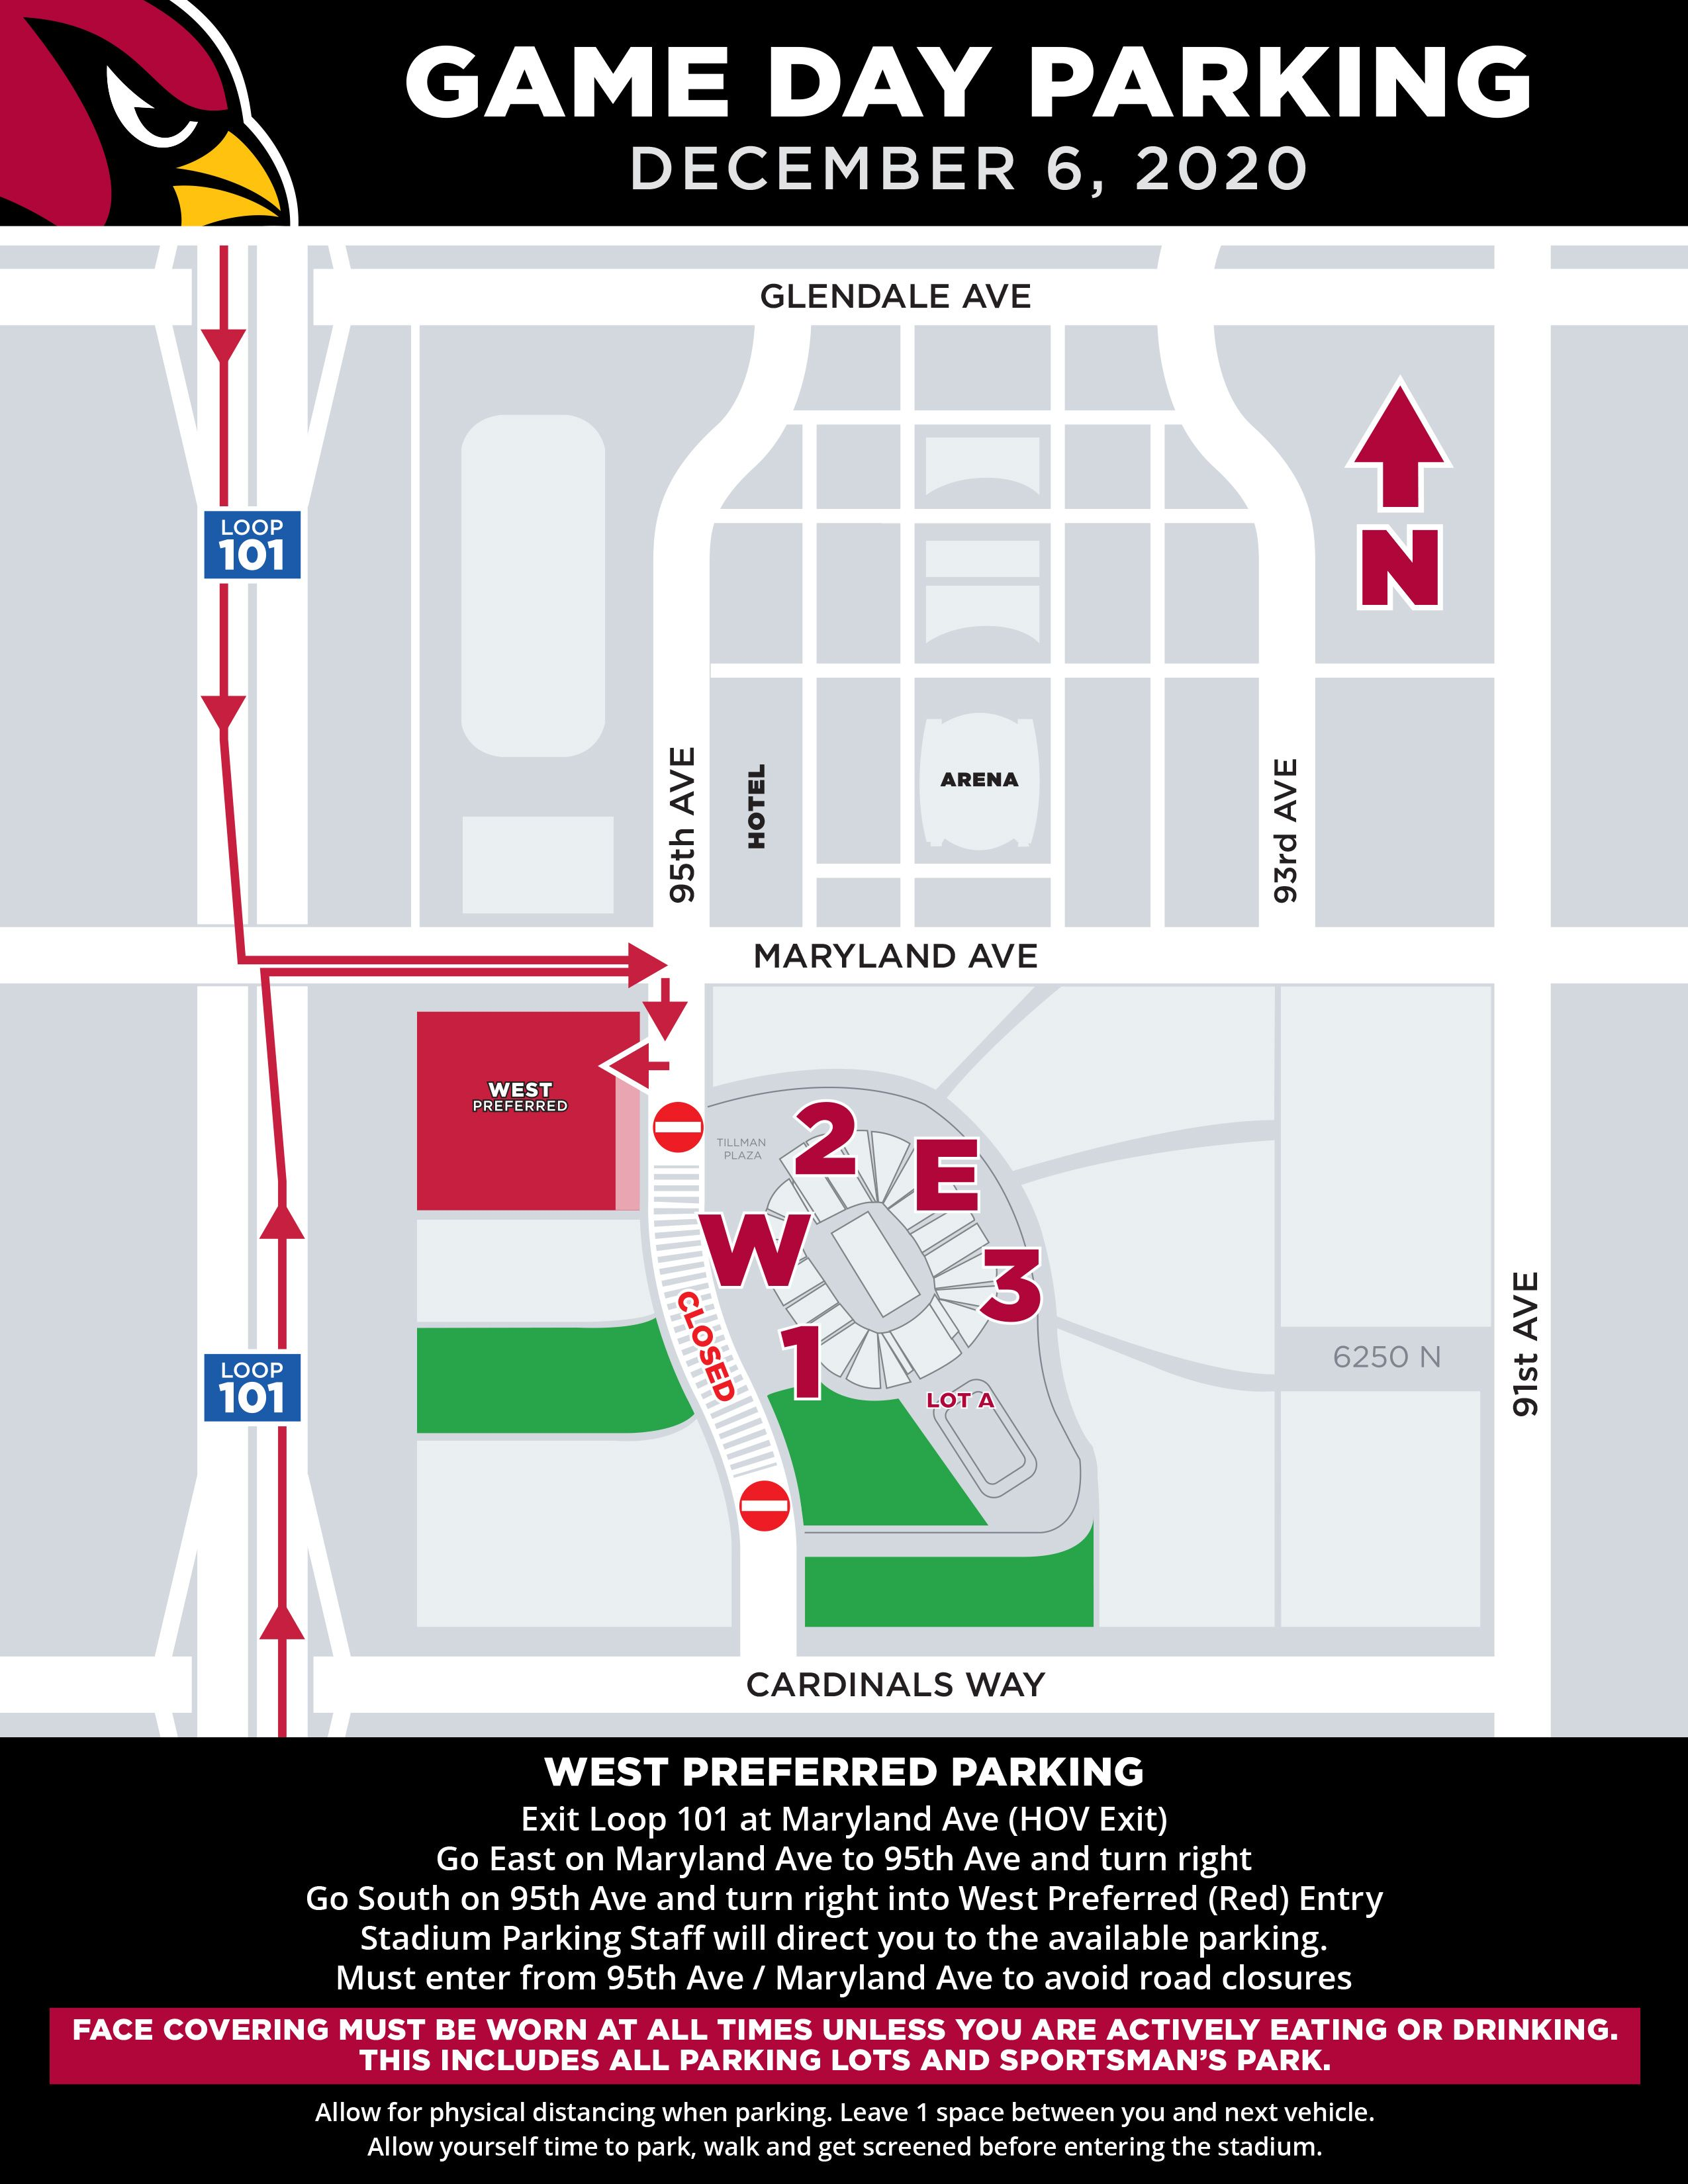 Arizona Cardinals West Preferred Parking Map For State Farm Stadium on December 6, 2020 vs. Los Angeles Rams